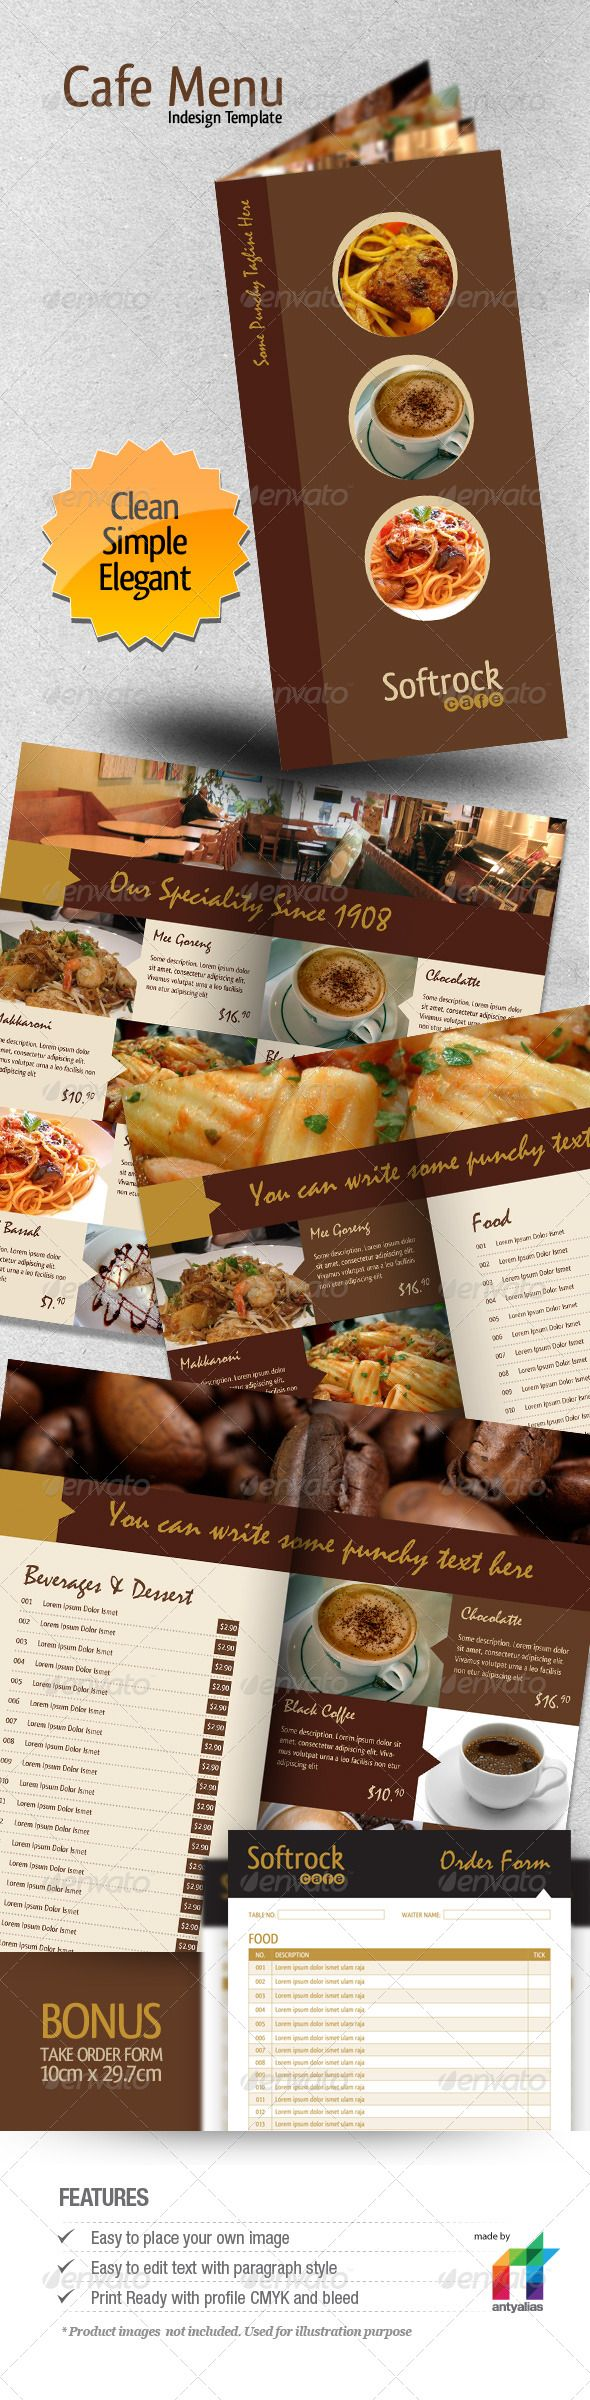 Cafe Menu Indesign Template The 112 best